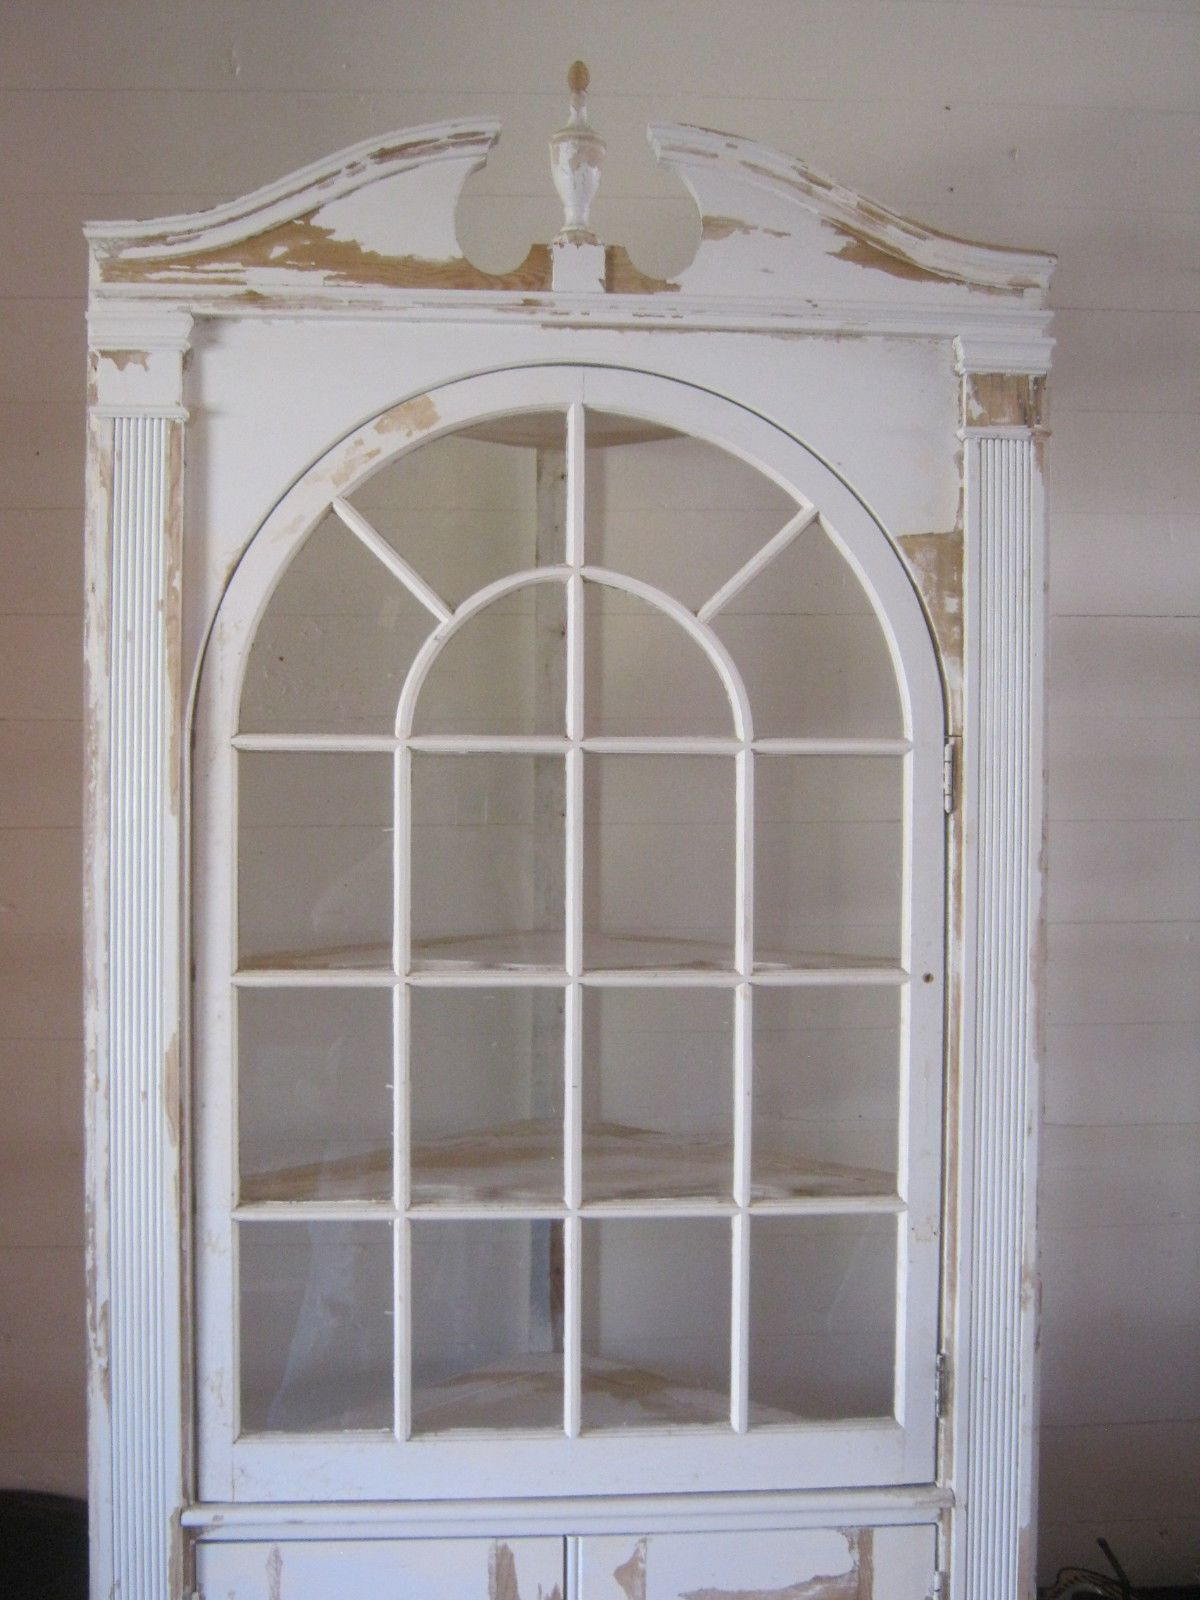 Antique Vintage Built In Corner Cabinet China Cupboard 1940's Chippy white  paint - Antique Vintage Built In Corner Cabinet China Cupboard 1940's